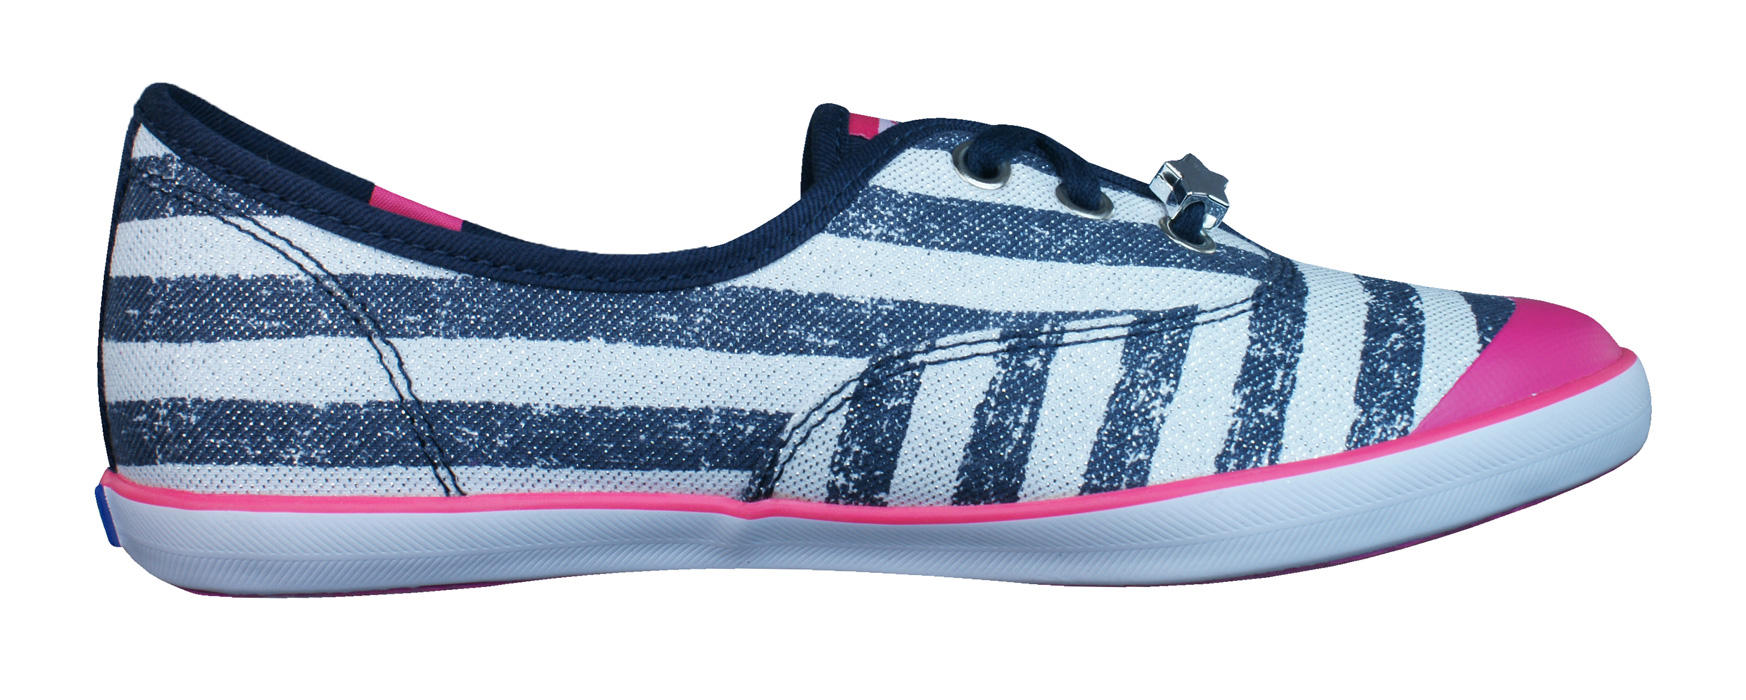 358ae69366bcff Keds Champion K Girls Lace Up Trainers   Shoes - Navy Blue at ...